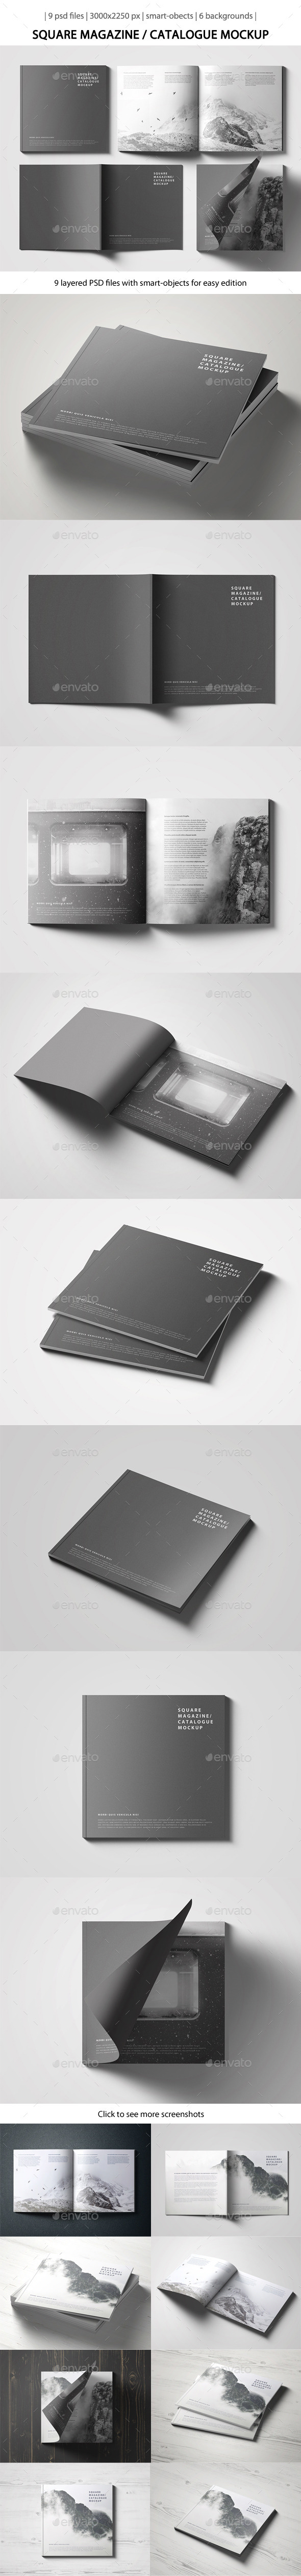 Square Magazine Catalogue Mockup